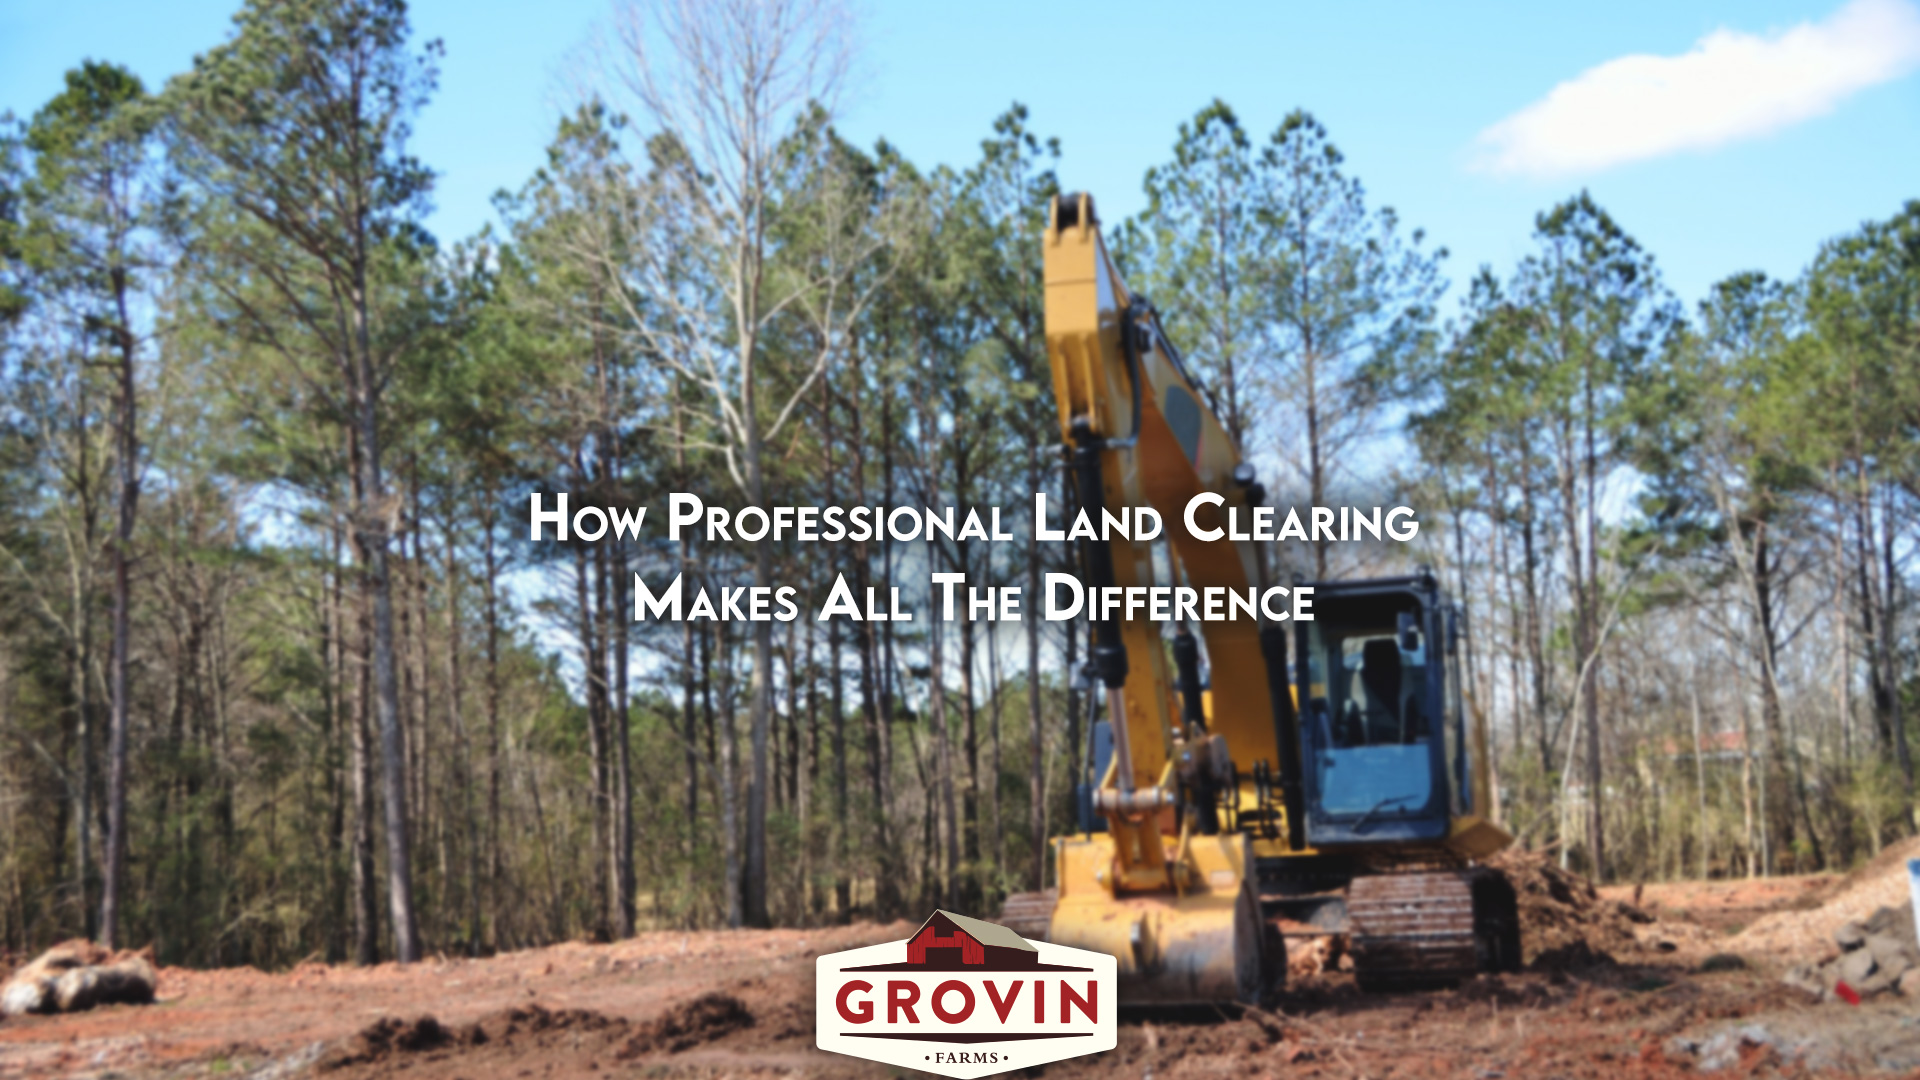 Professional Lot clearing company, land clearing in florida, lot clearing near me, sod farm, sod provider